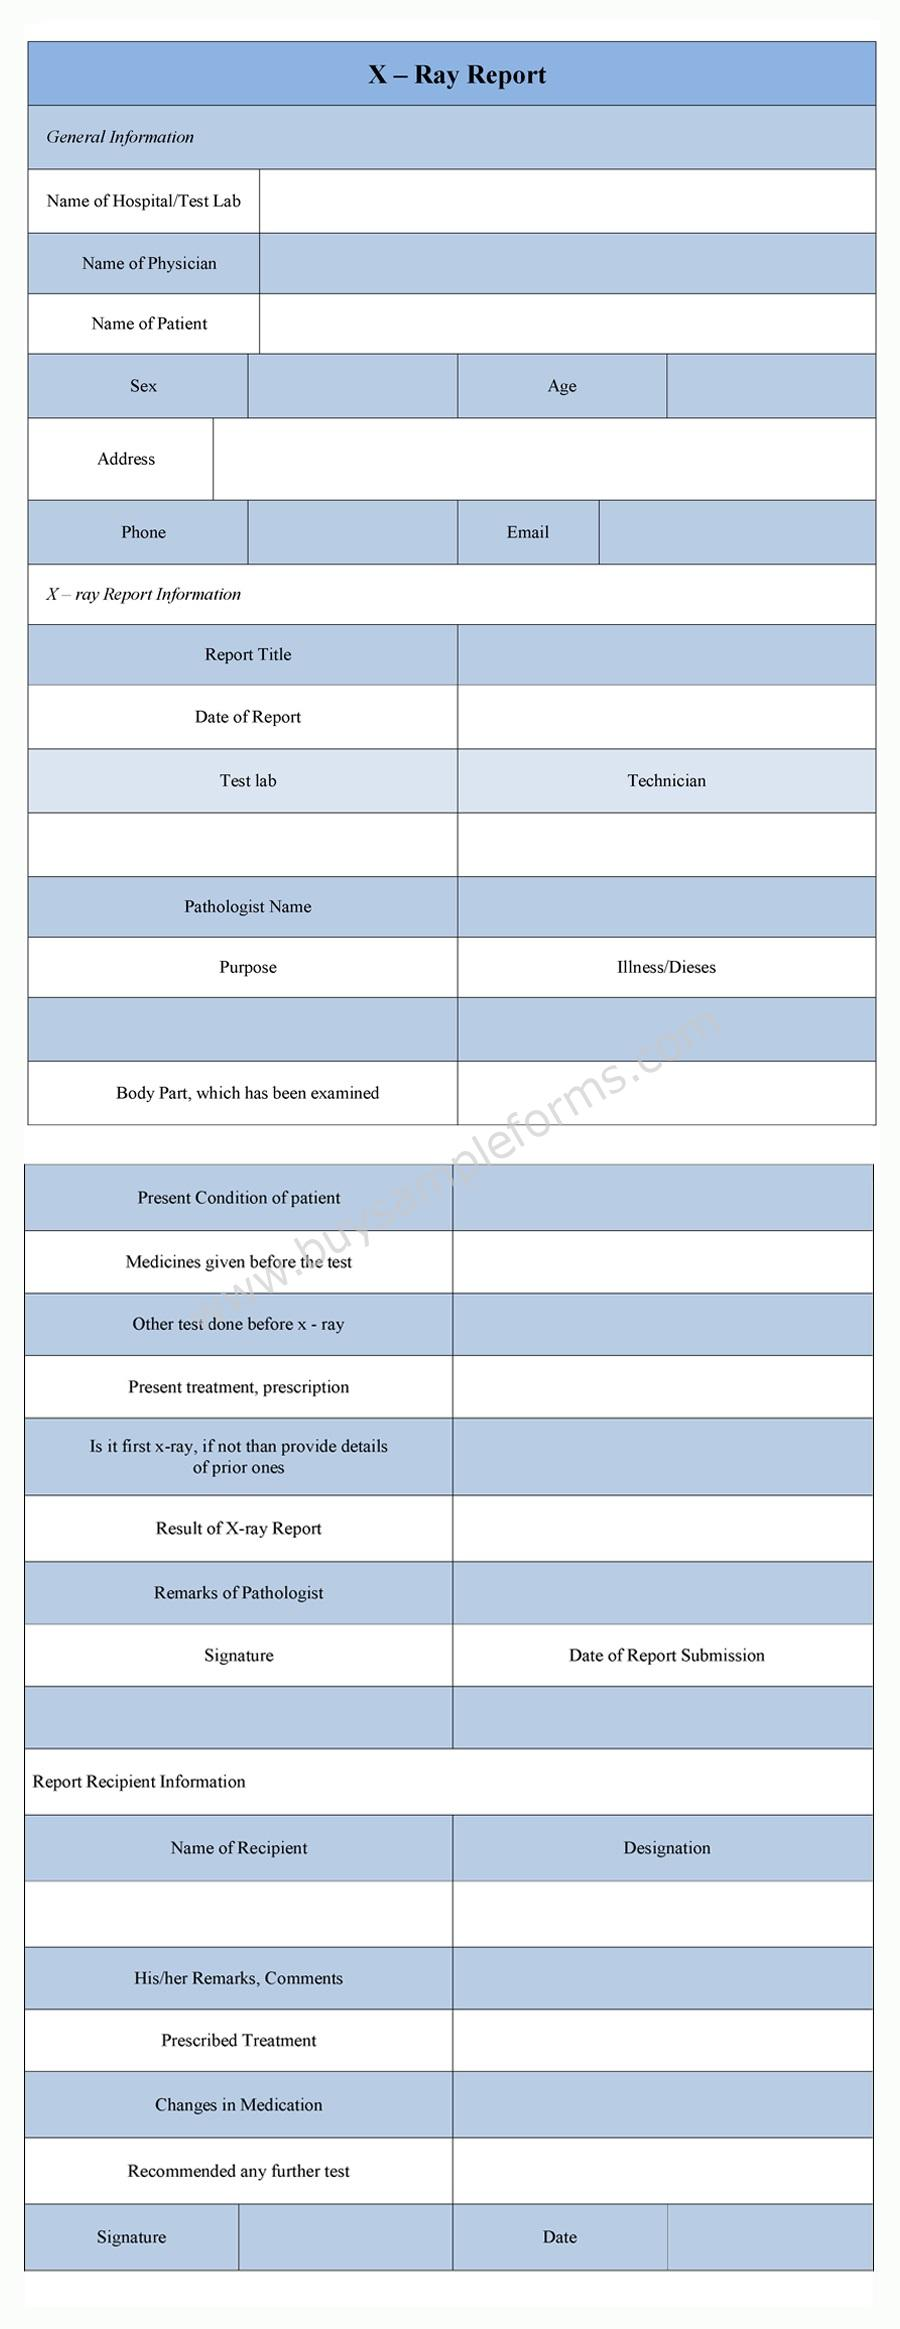 x-ray report template